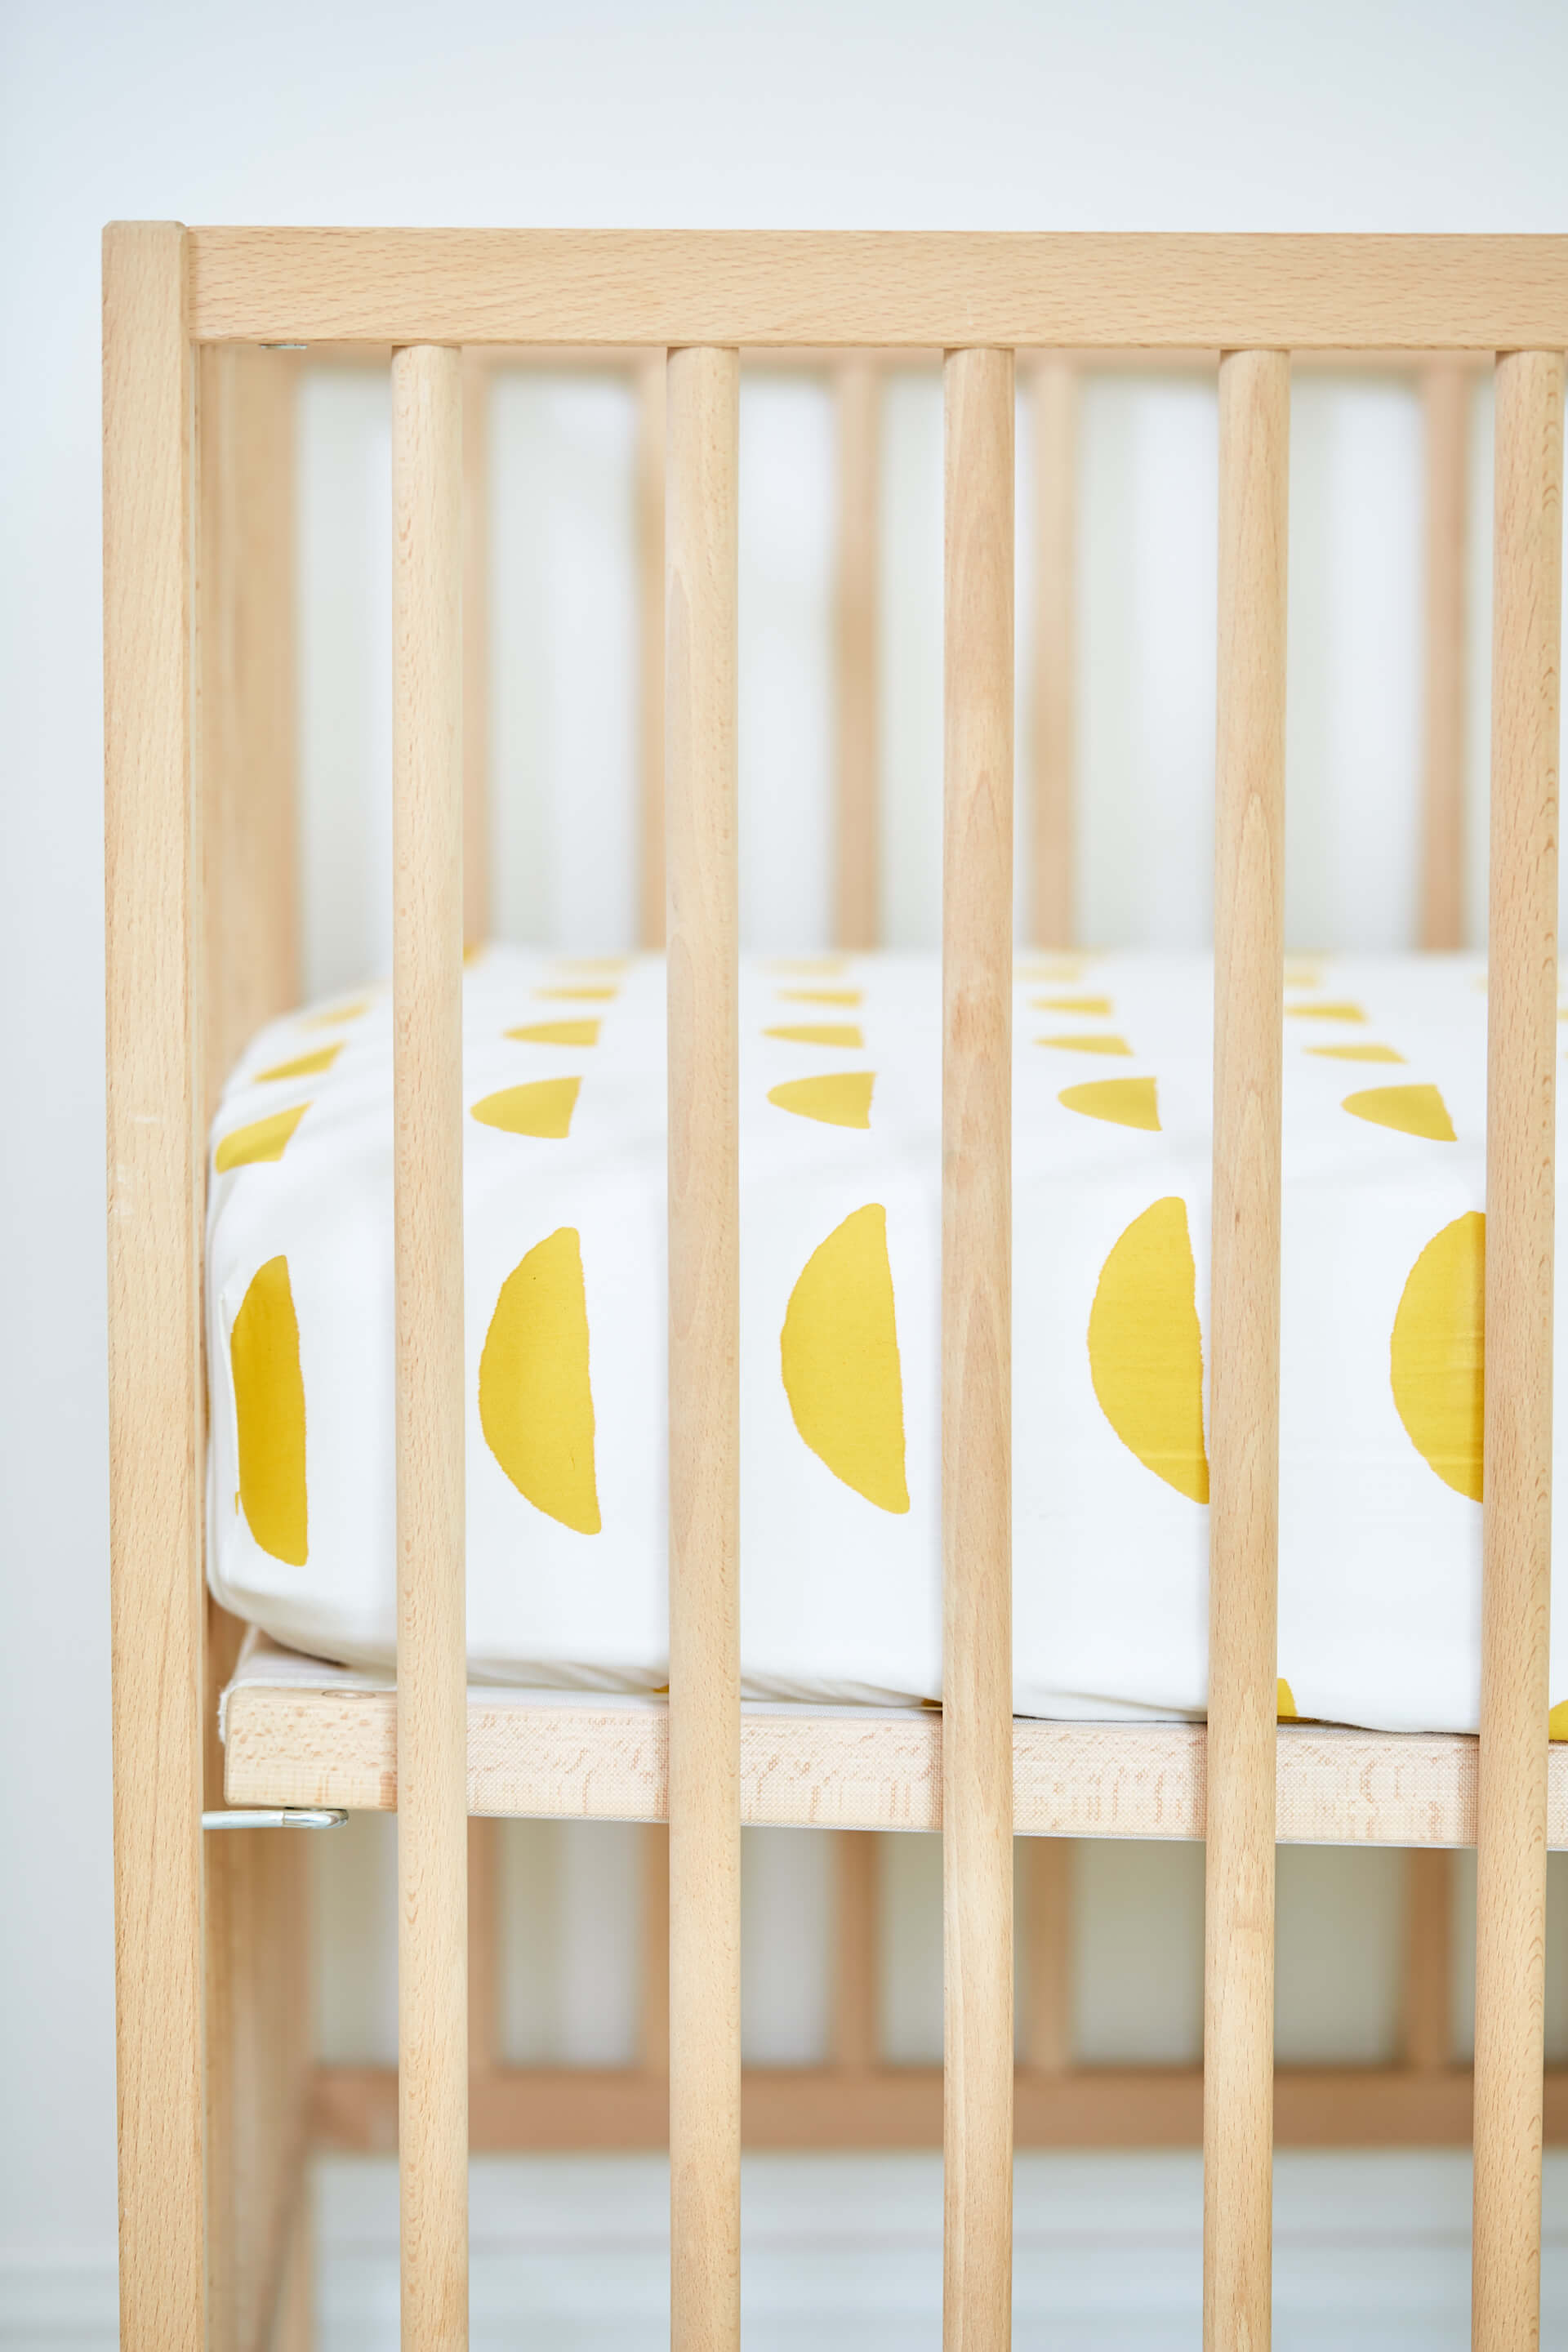 Kindred Kid & Baby Organic Cotton Half Moon Crib Sheet